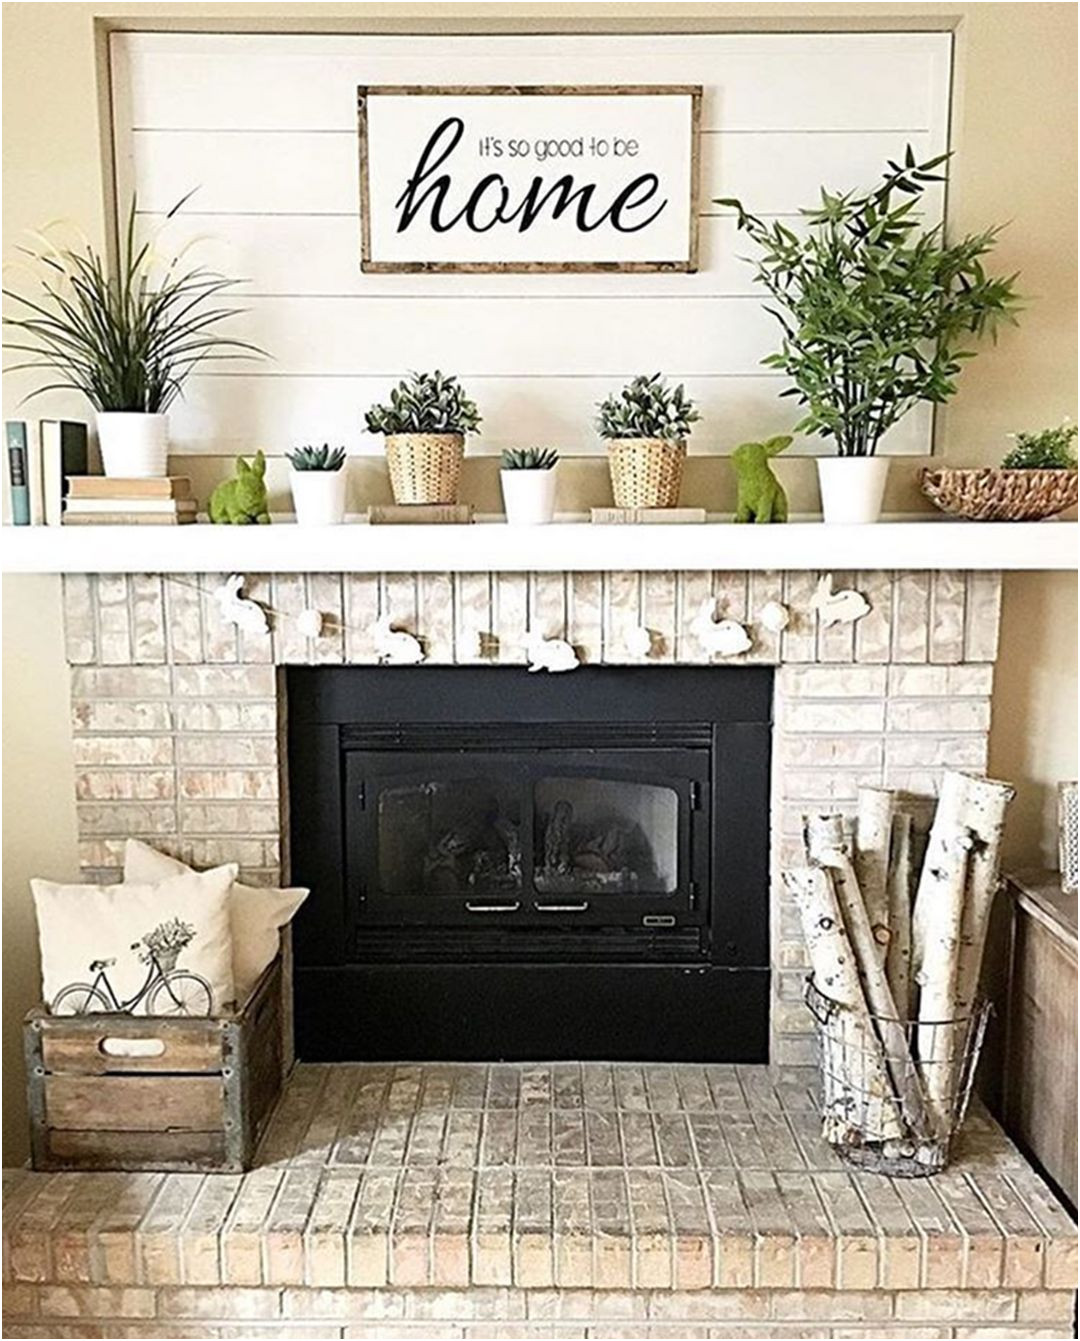 Fireplace with Mantel Ideas Inspirational Farmhouse Fireplace Mantel Decor Decor It S